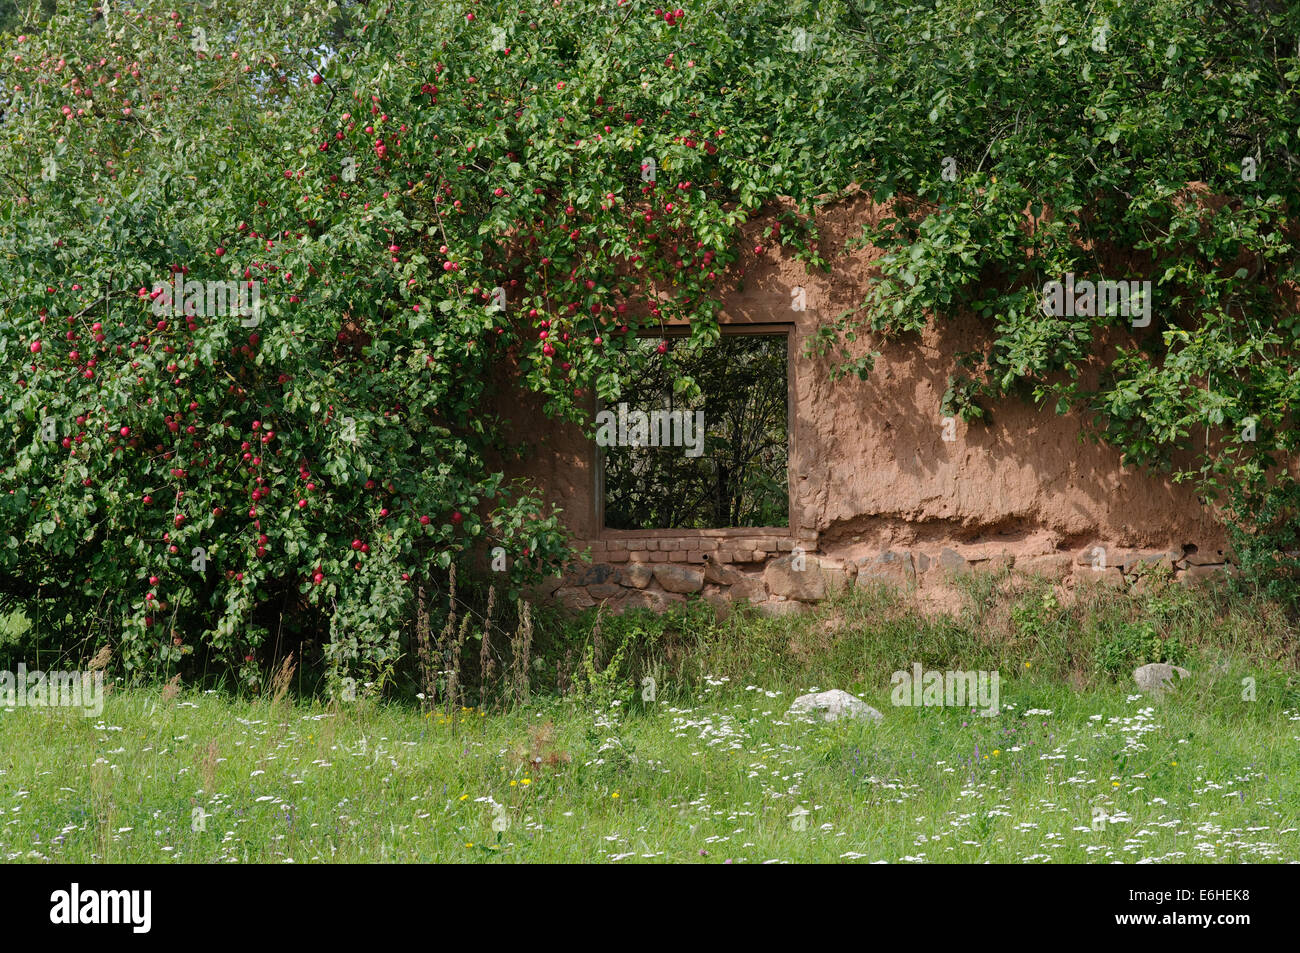 Window Hole In Decayed Traditonal South Estonian Clay Made Building, Decorated With Apple Tree. Tartu County. Estonia - Stock Image